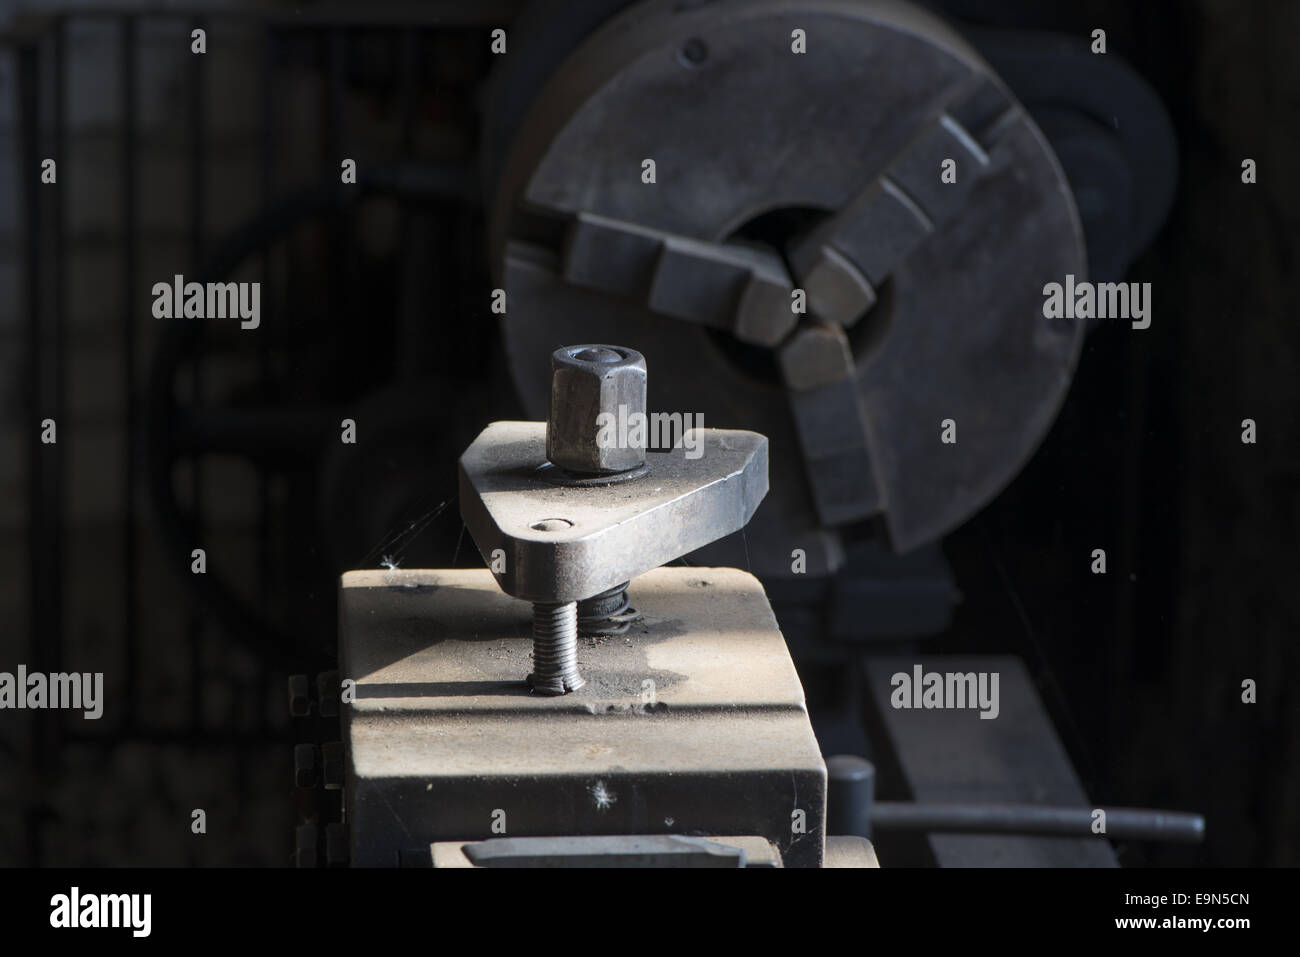 Lathe of Locksmith - Stock Image